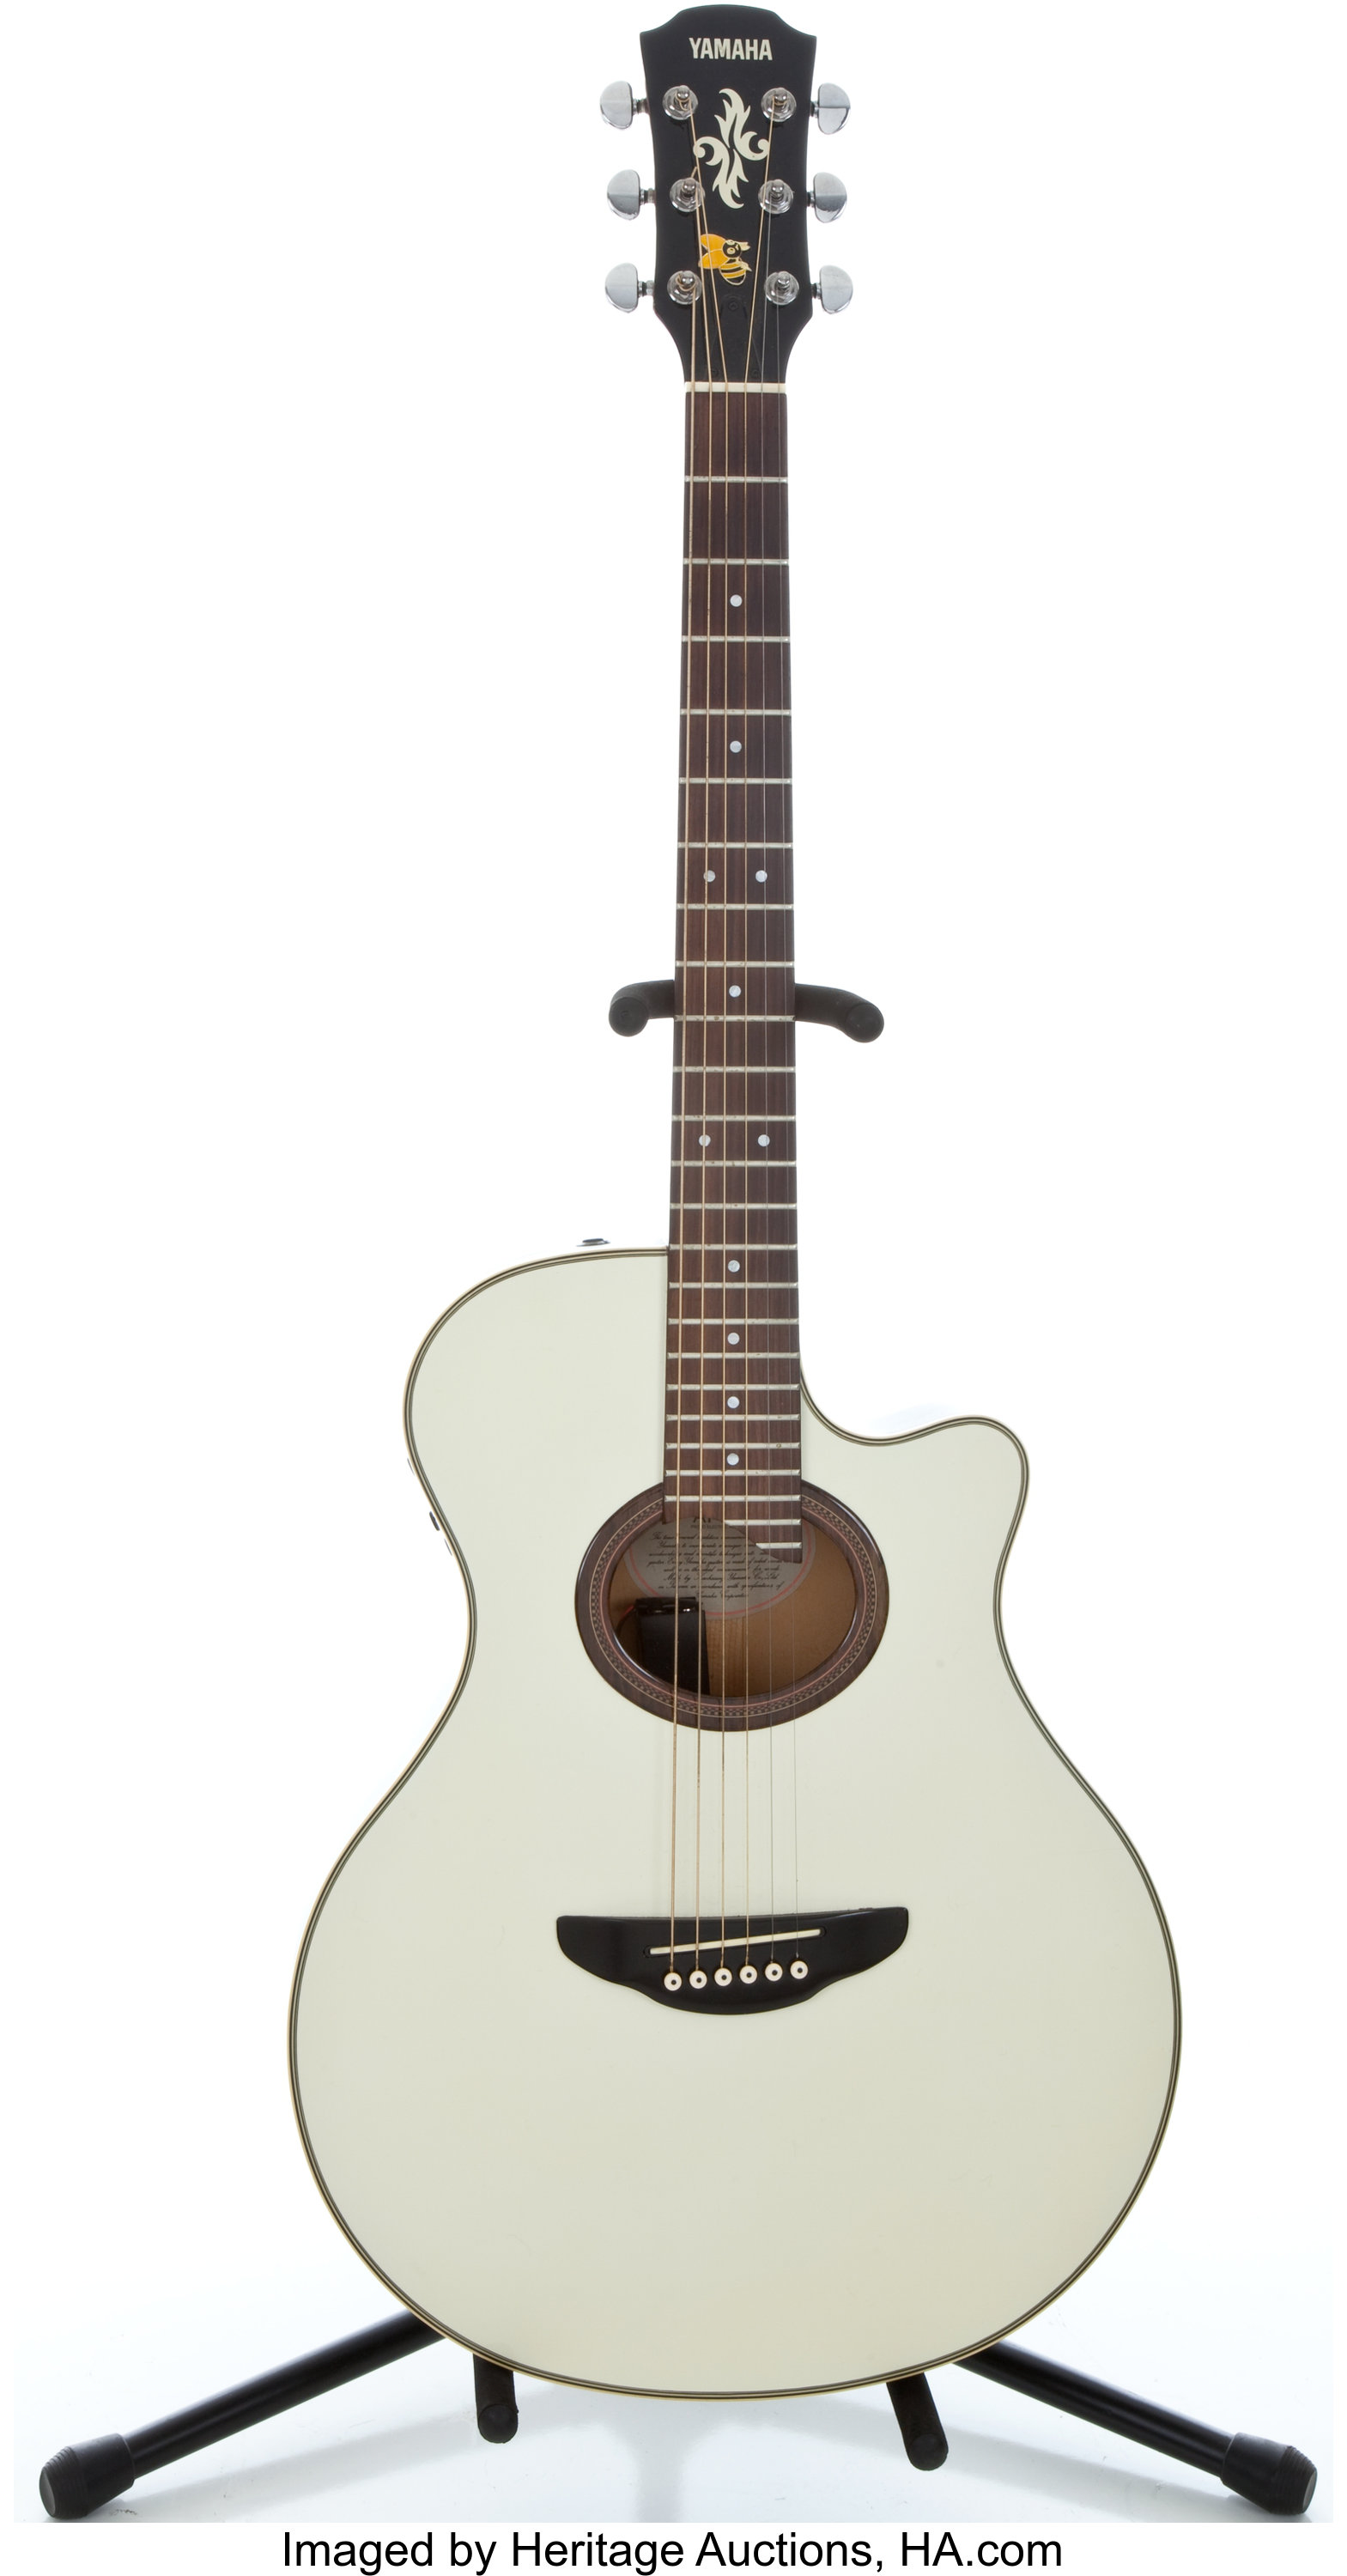 yamaha apx 6 white acoustic electric guitar 303117044 musical lot 82023 heritage auctions. Black Bedroom Furniture Sets. Home Design Ideas